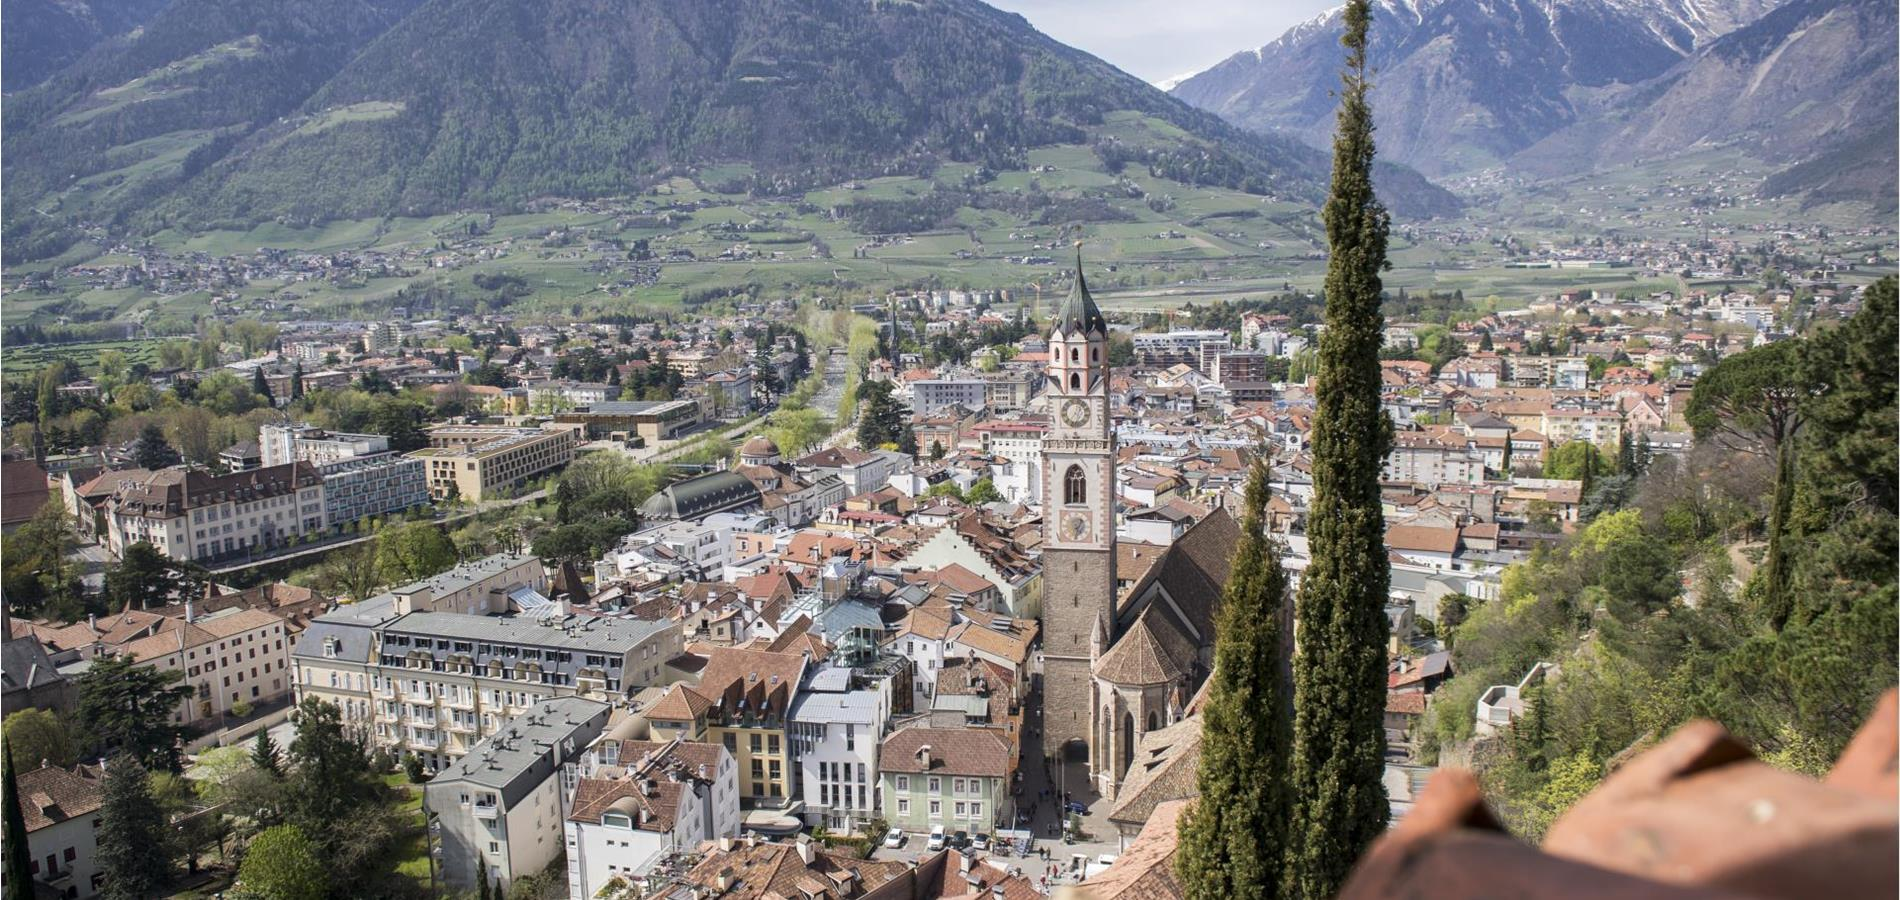 Spa Town of Merano